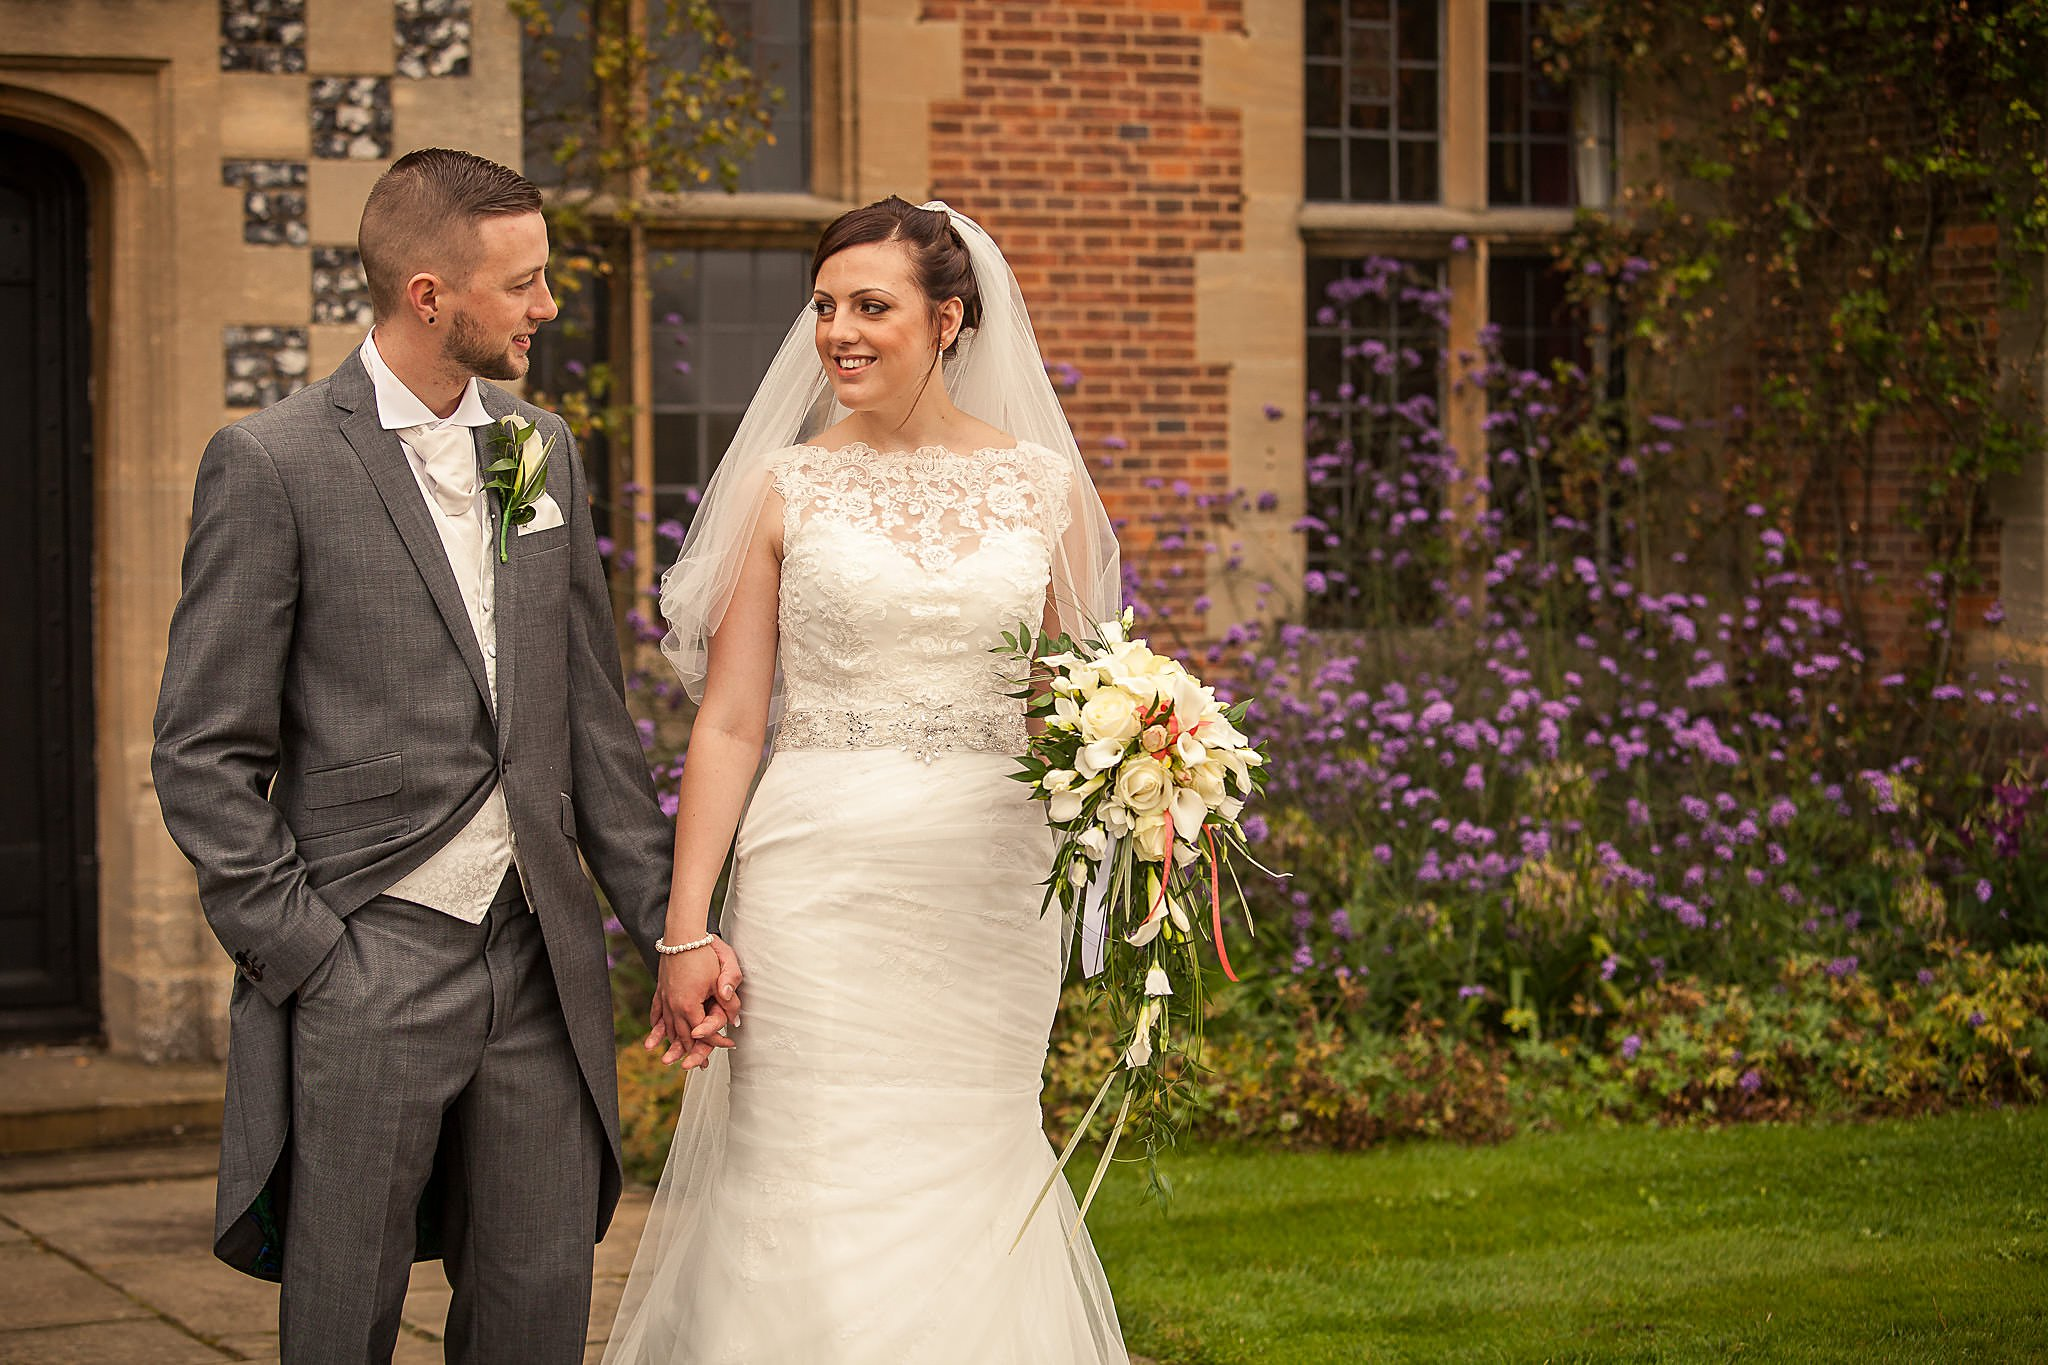 Putteridge Bury Wedding Photographer